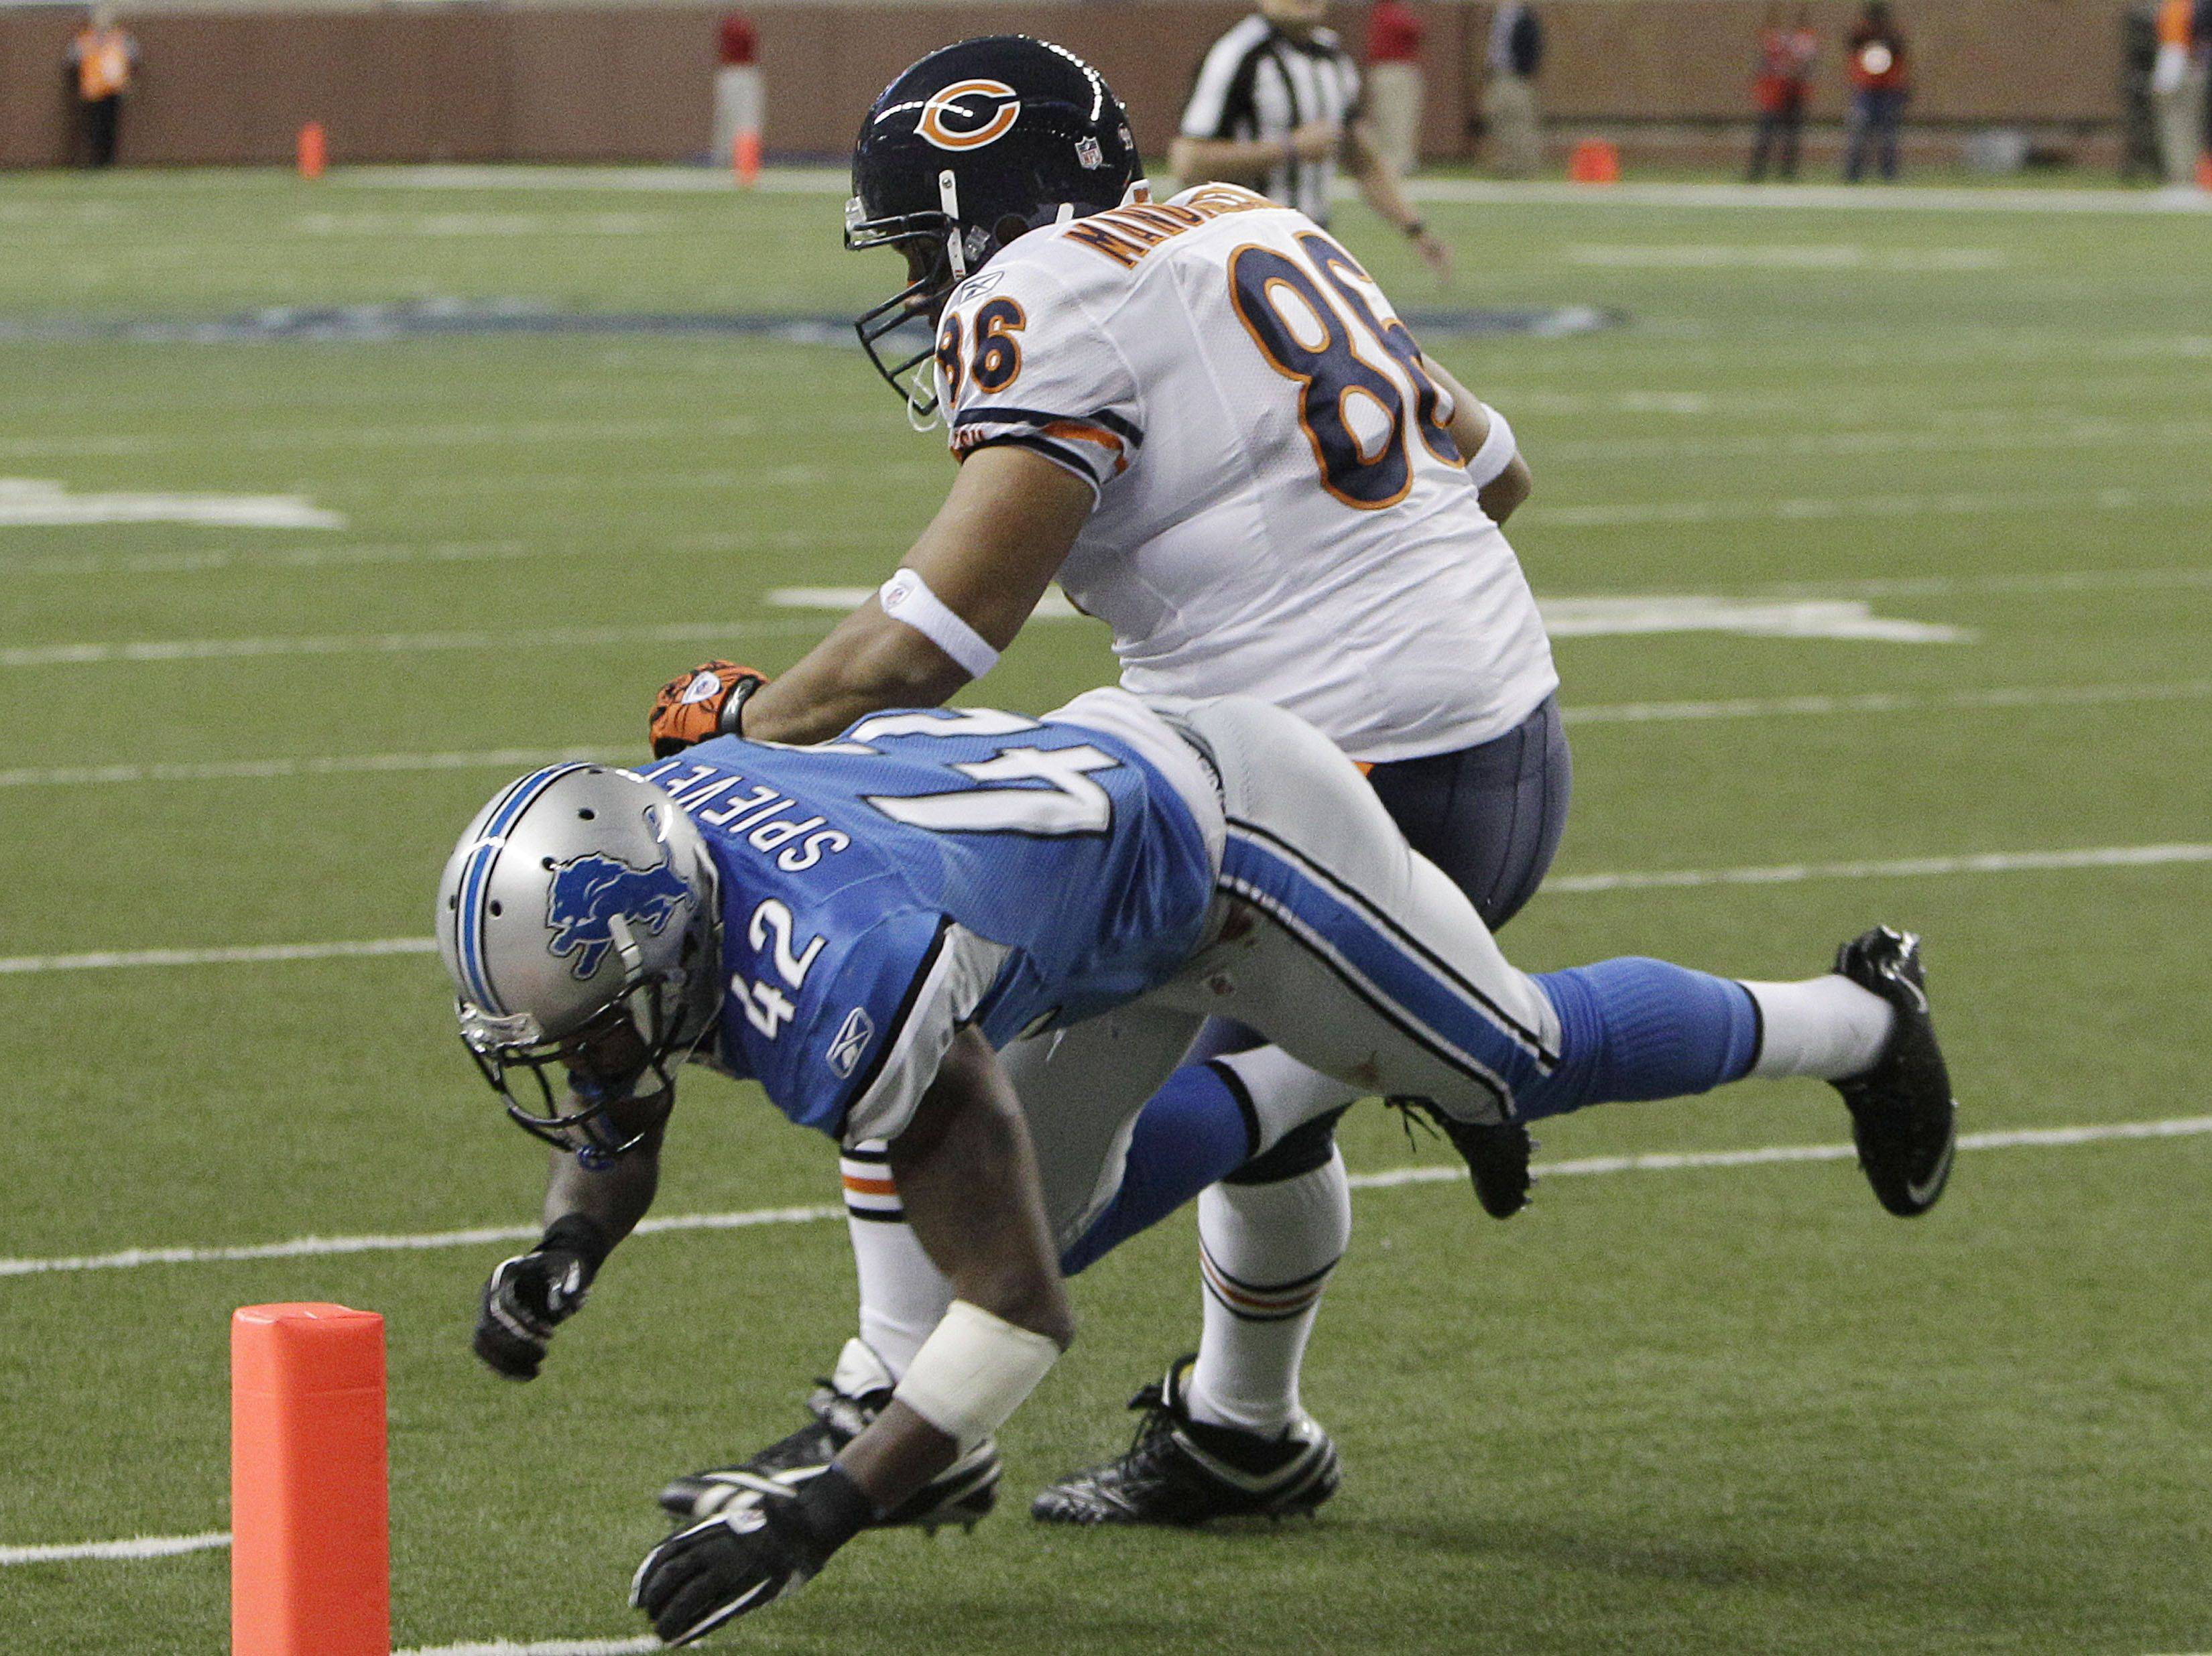 Chicago Bears tight end Brandon Manumaleuna avoids the tackle os Detroit Lions cornerback Amari Spievey during the fourth quarter and scores a touchdown.